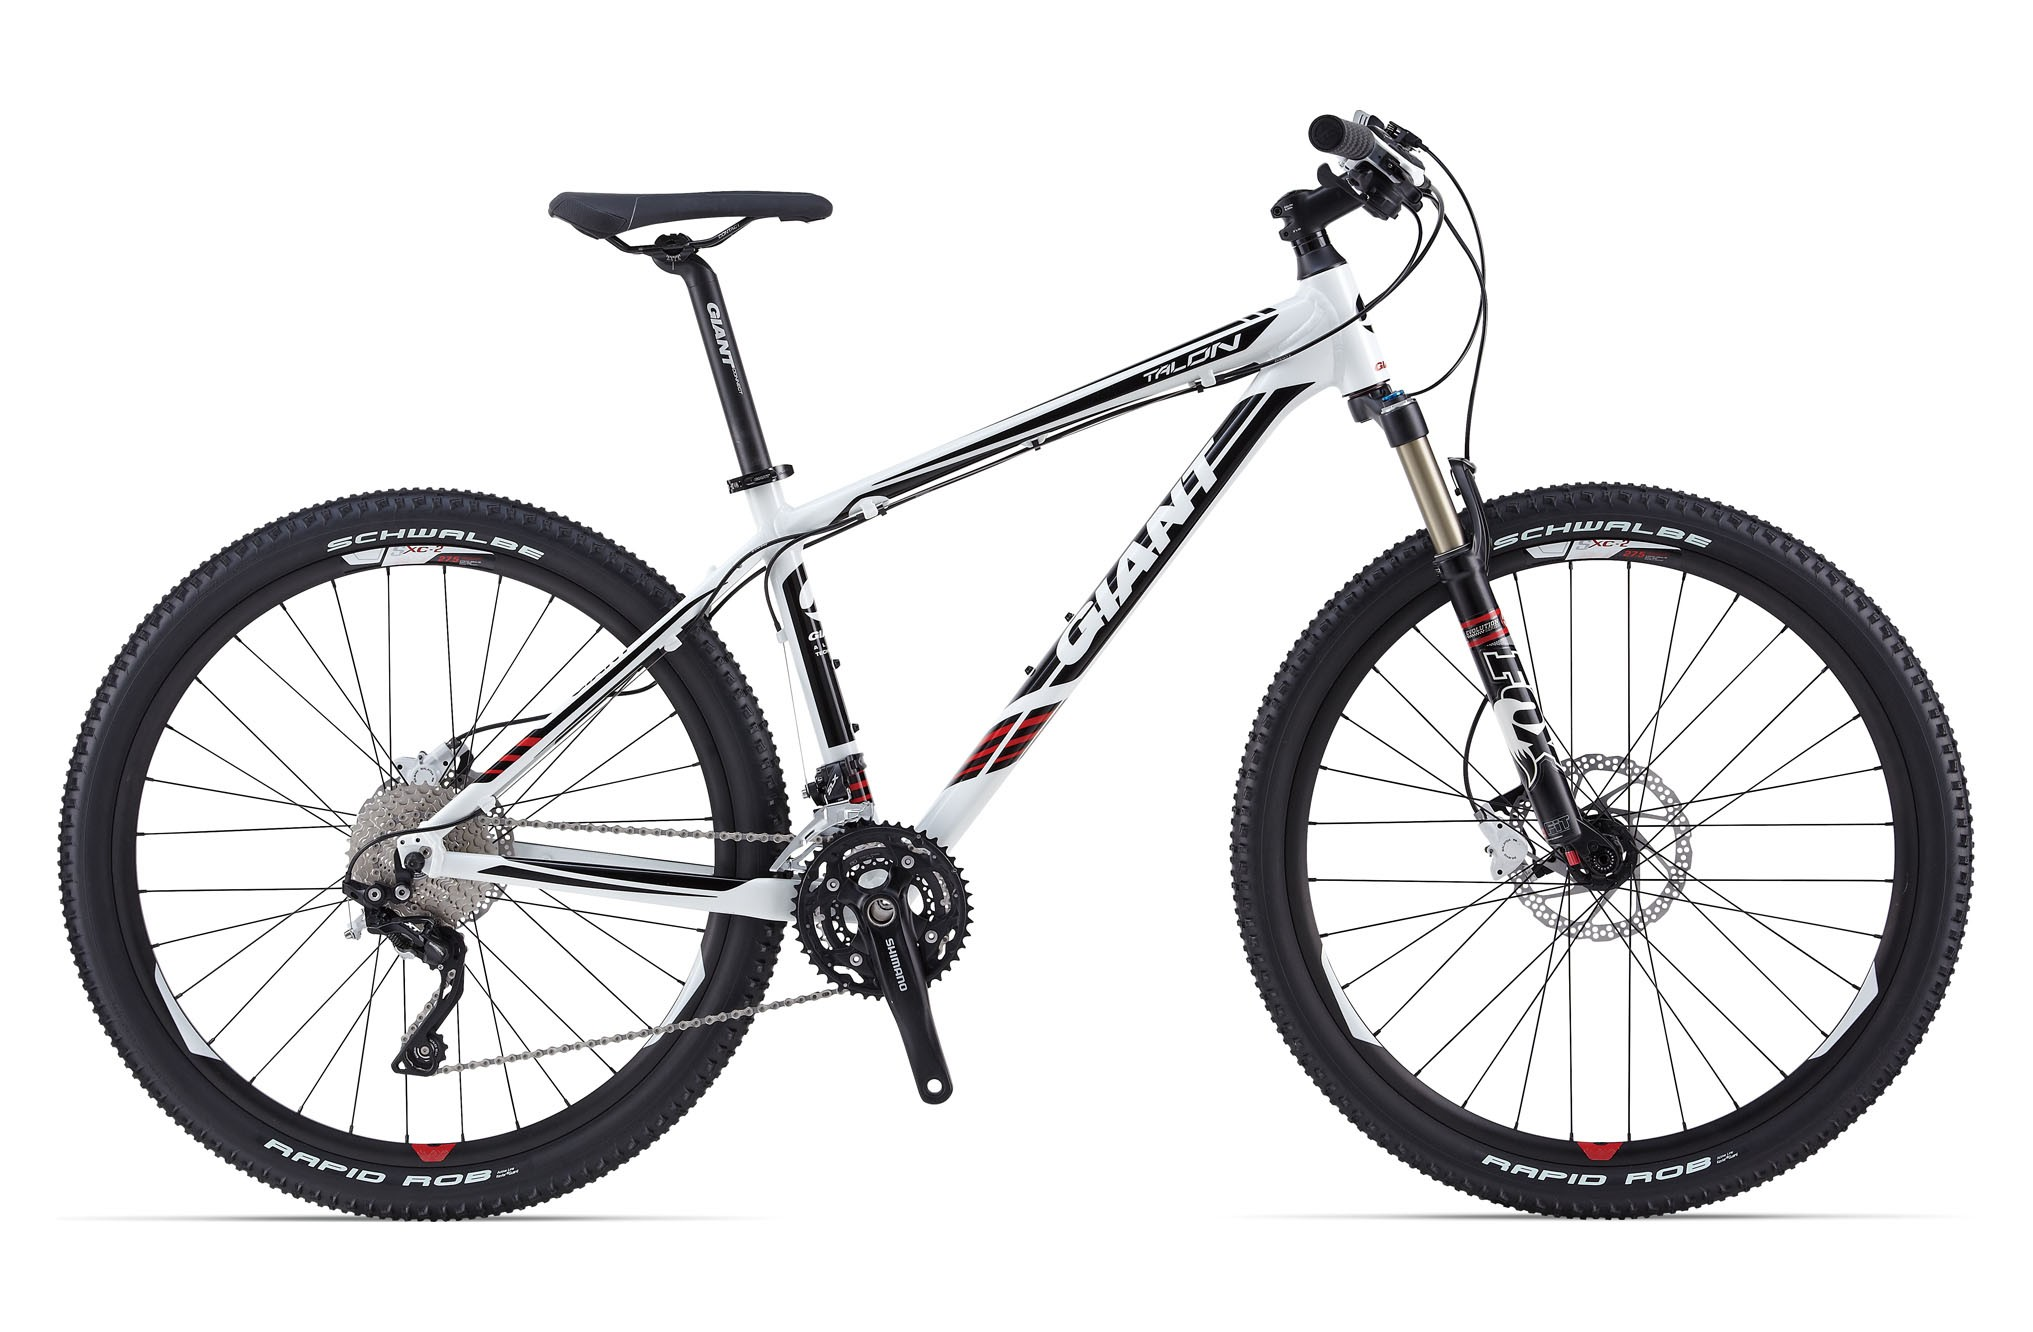 Горный велосипед Giant Talon 27.5 0 (2014)